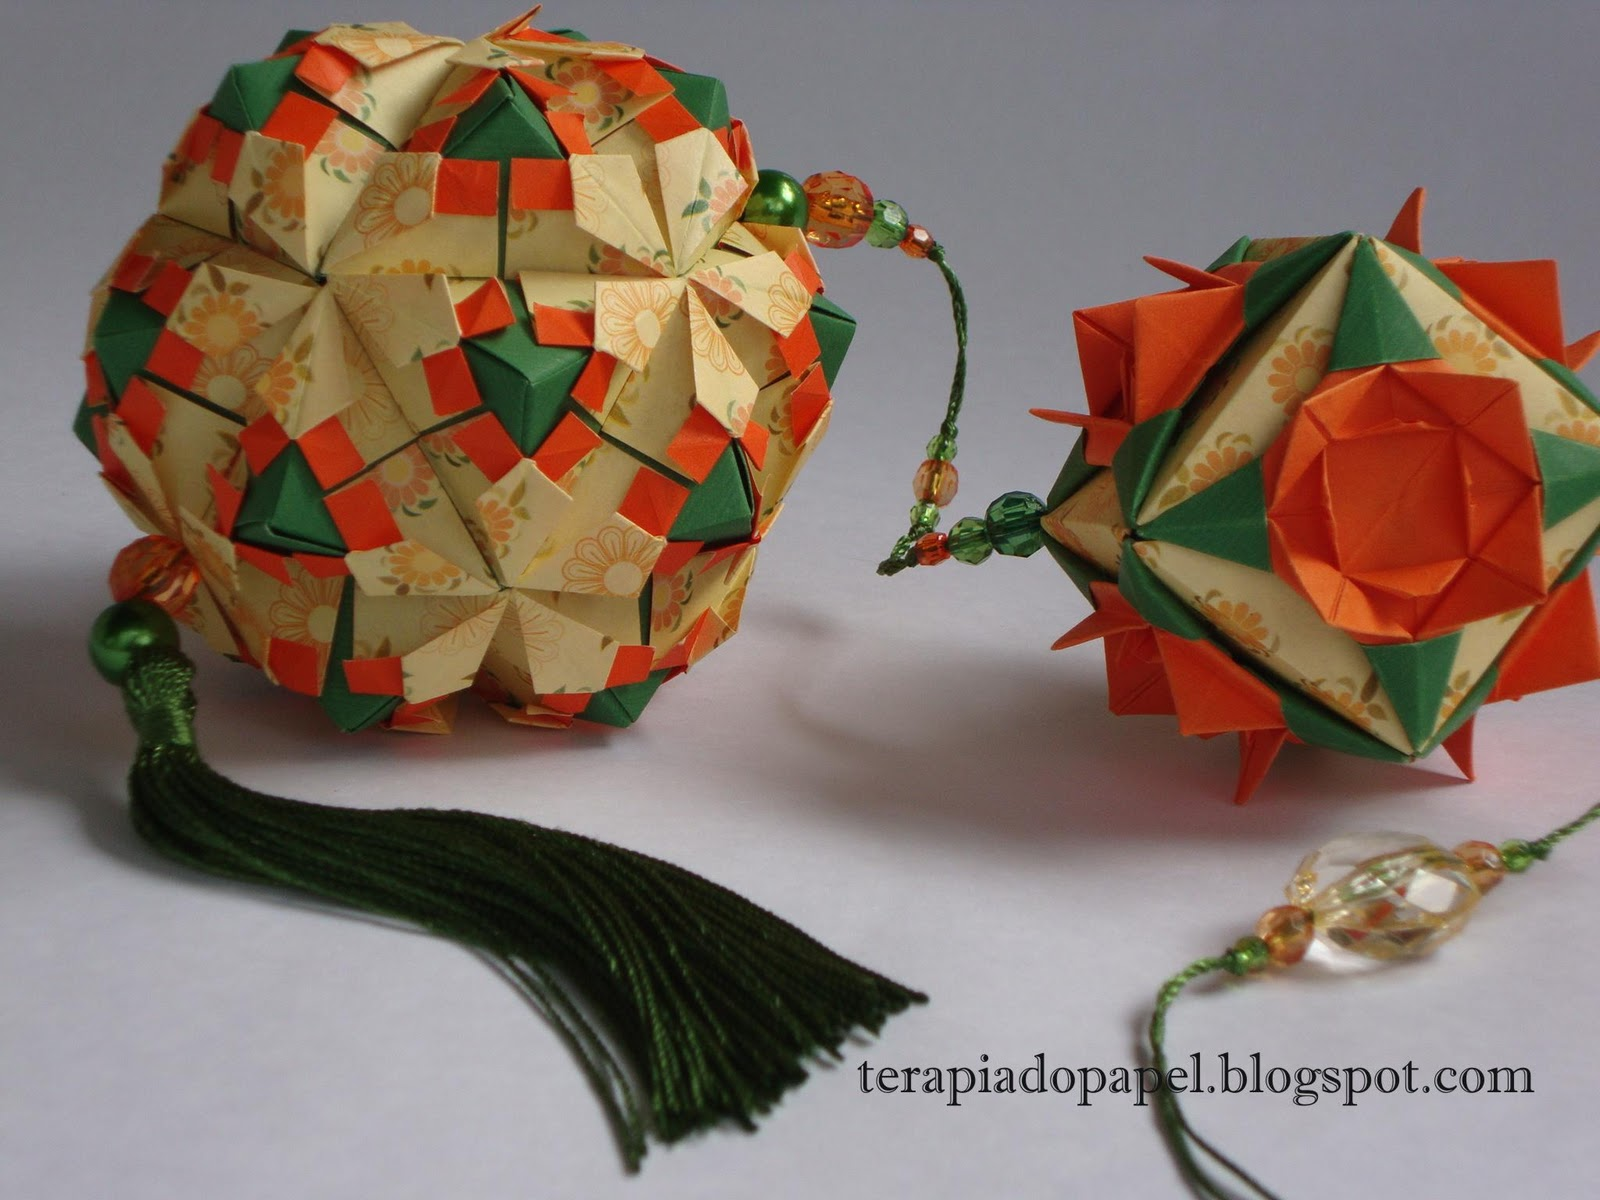 Origami Flower Diagram In English 7 Pole Trailer Plug Wiring 1000+ Images About Kusudamas On Pinterest | Modular Origami, And Paper Ball